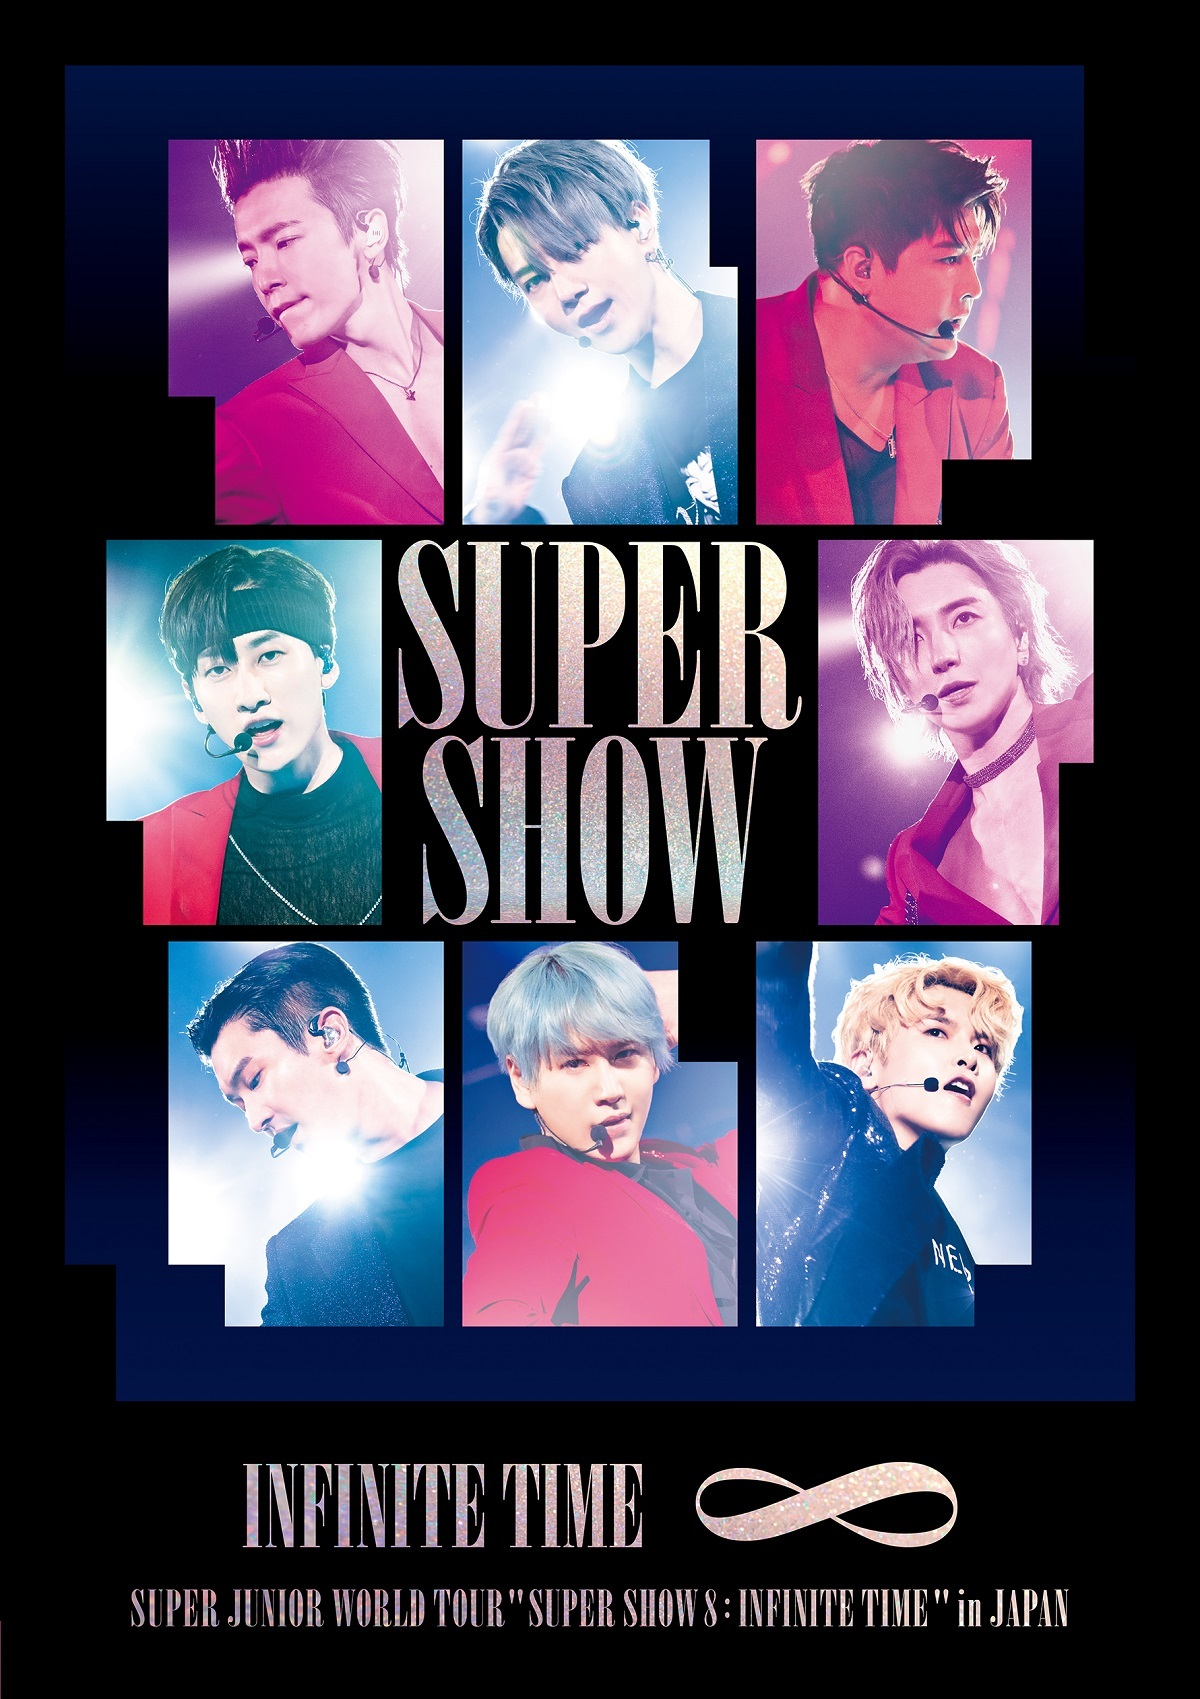 SUPER JUNIOR『SUPER JUNIOR WORLD TOUR ''SUPER SHOW 8:INFINITE TIME'' in JAPAN』通常盤